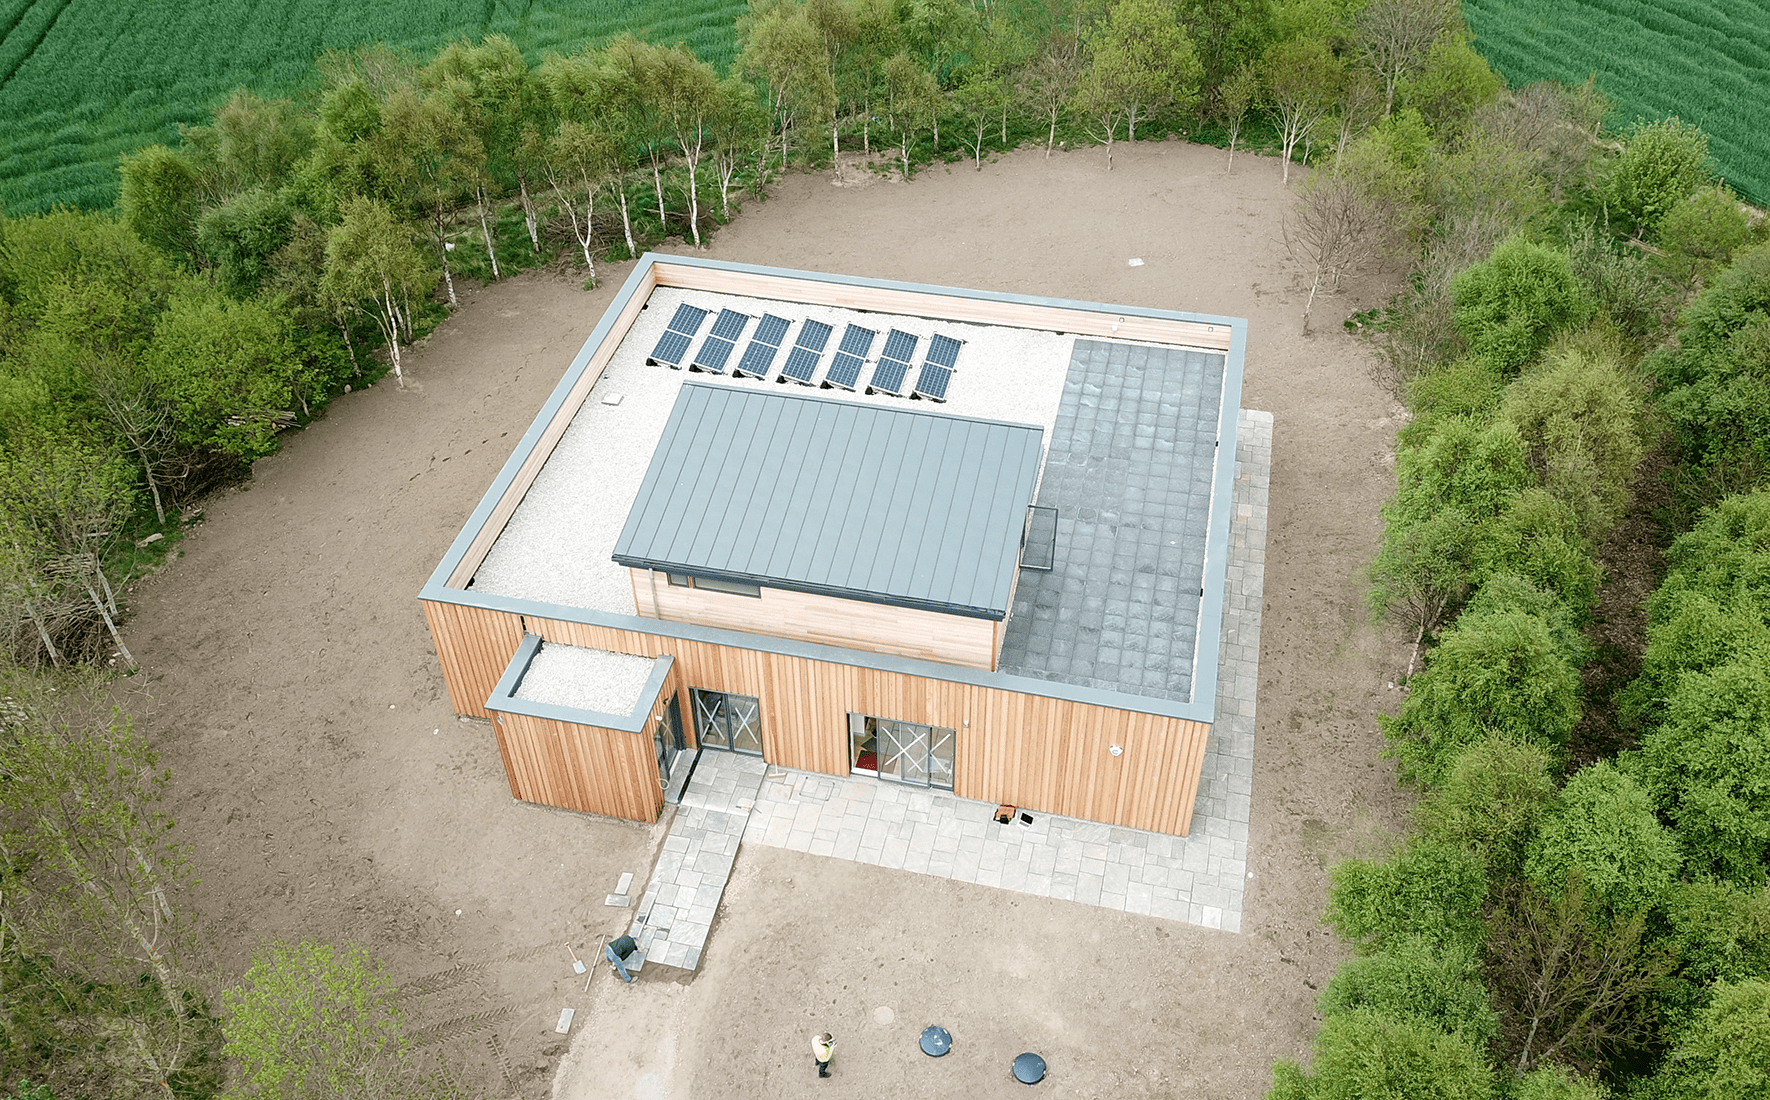 Courtyard house aerial view